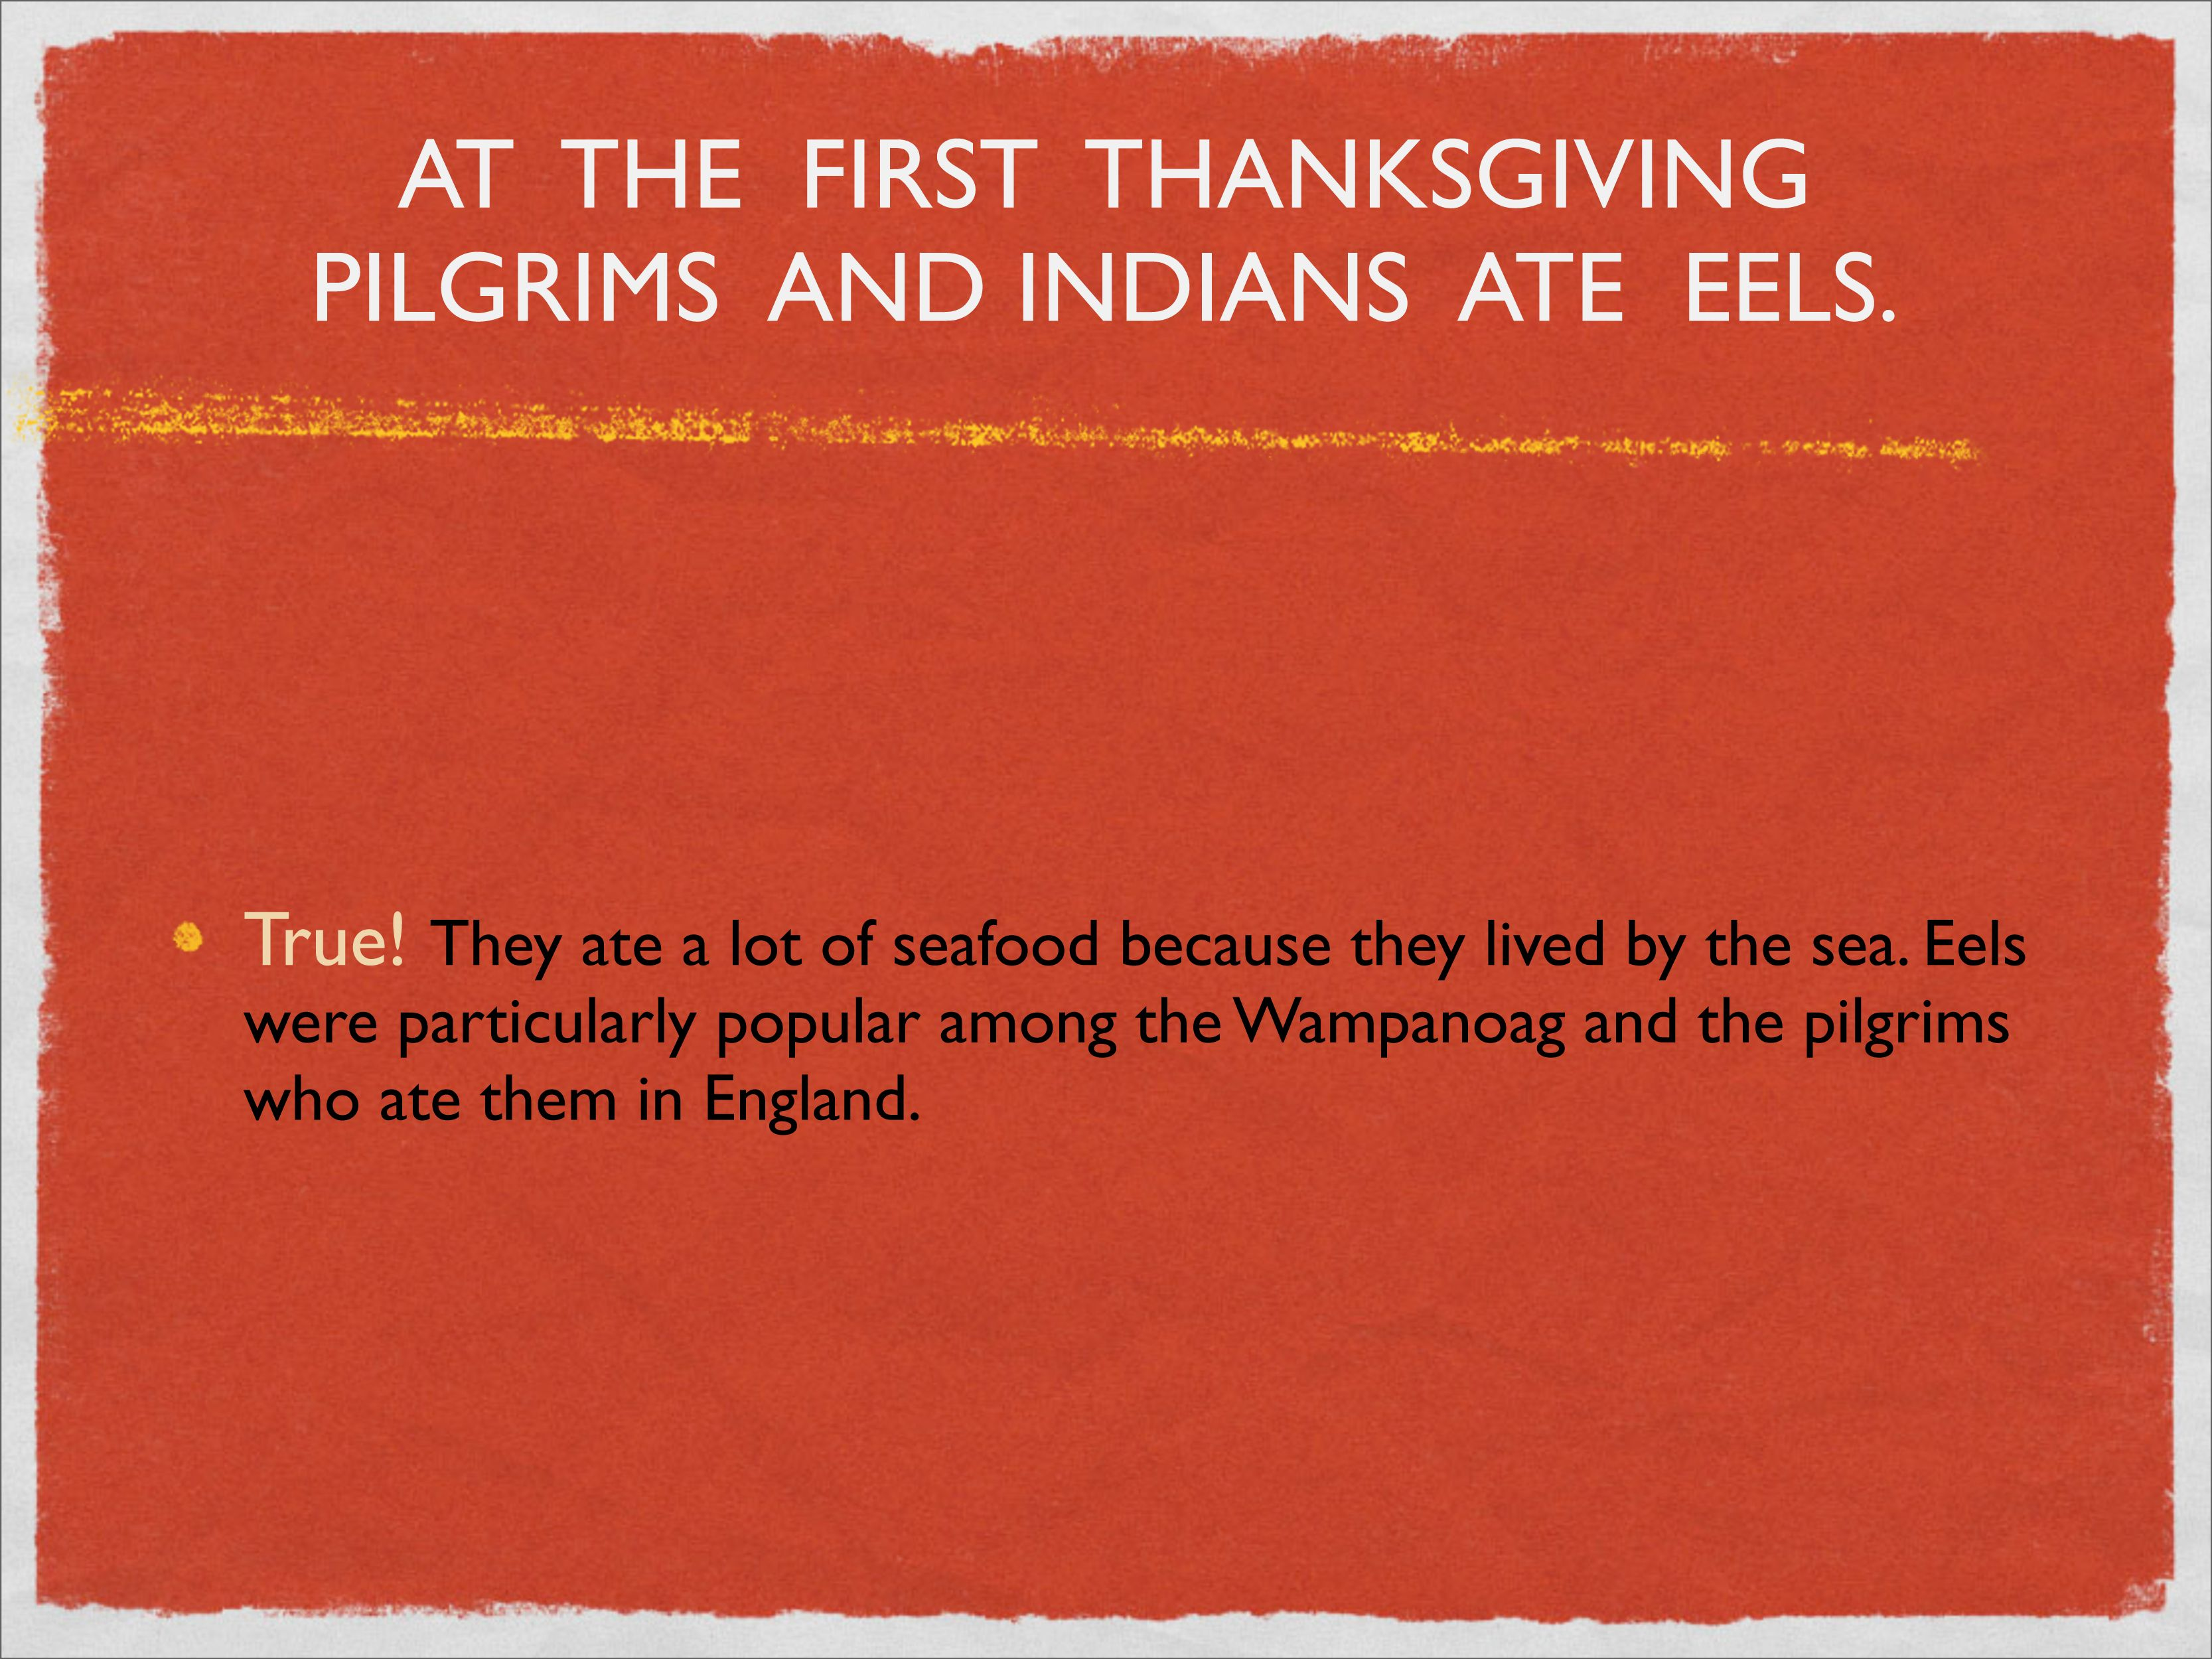 Everyone enjoyed eating eel at the 'first' Thanksgiving